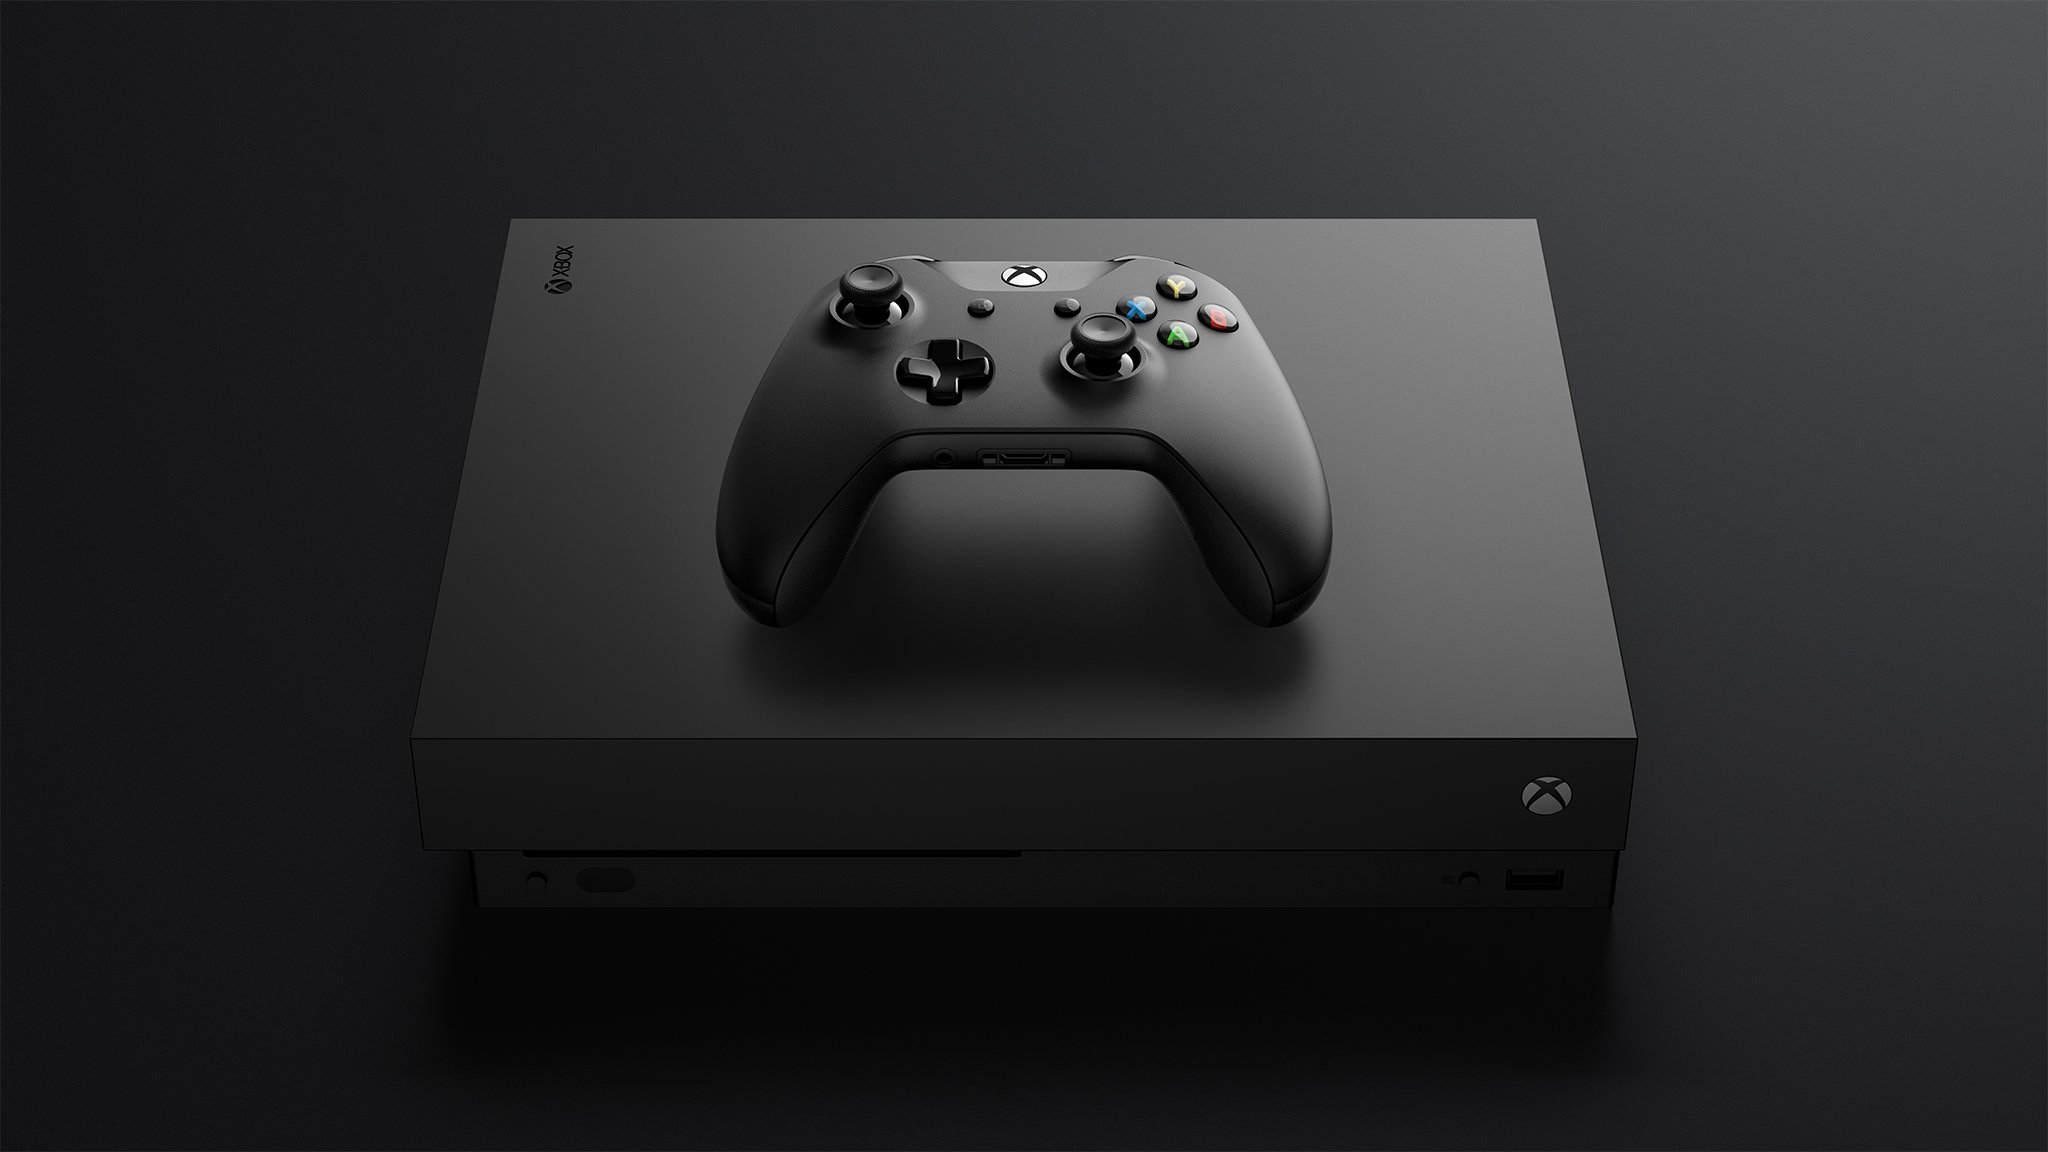 Microsoft will reveal the new Xbox Lockhart and Anaconda lineup at E3 2019.